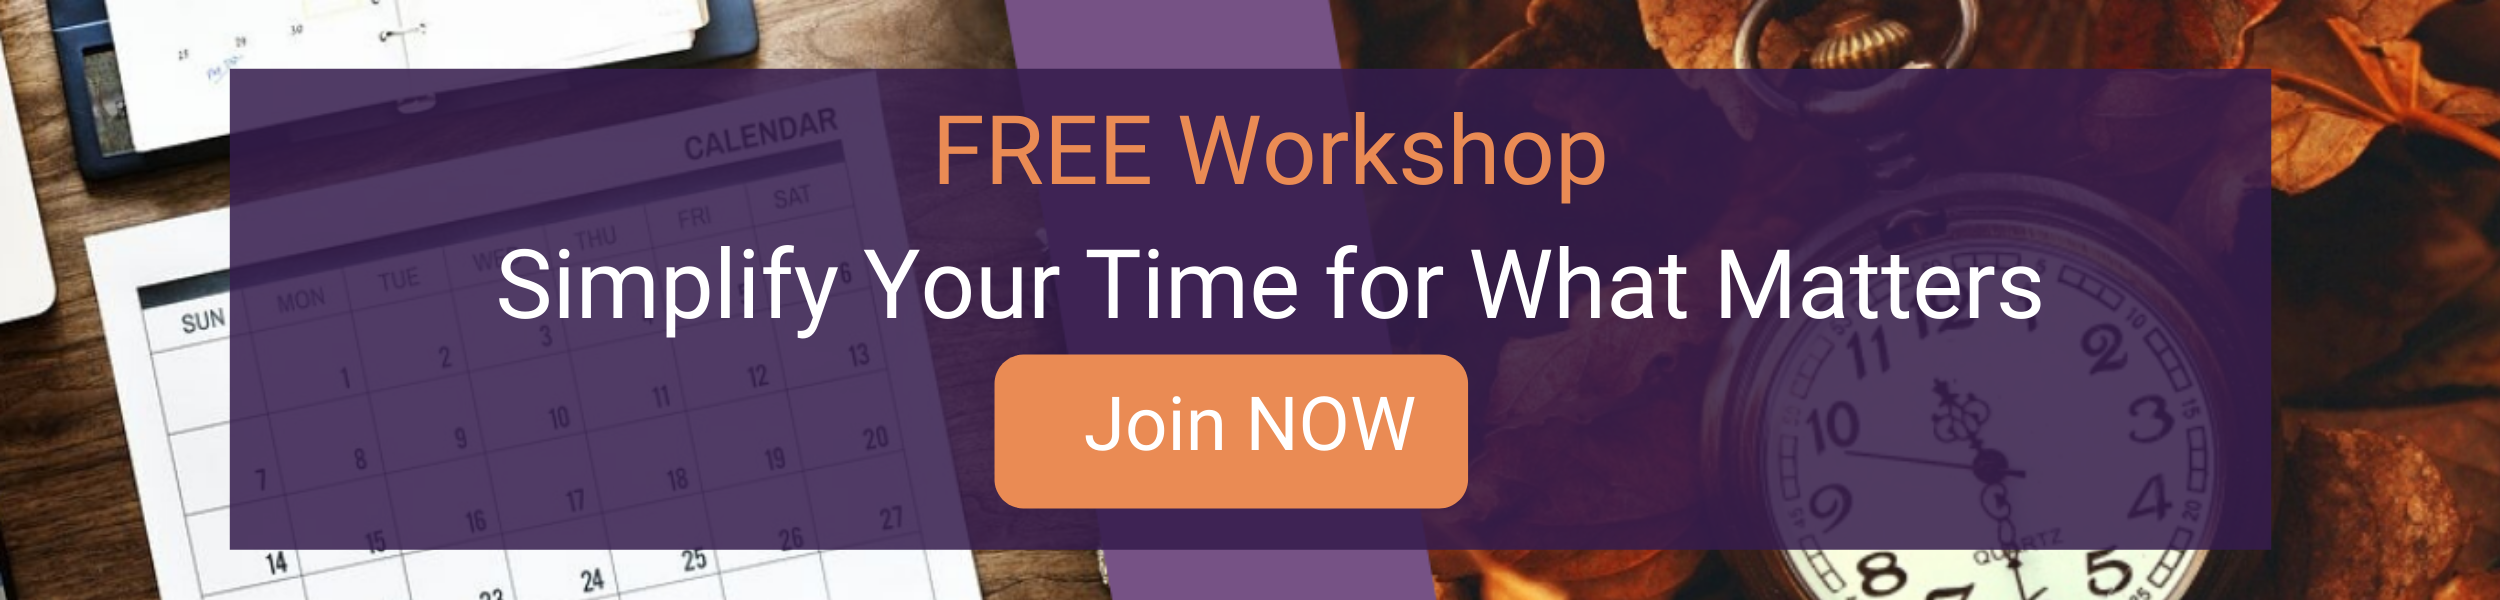 Free Workshop: Simplify Your Time for What Matters Most